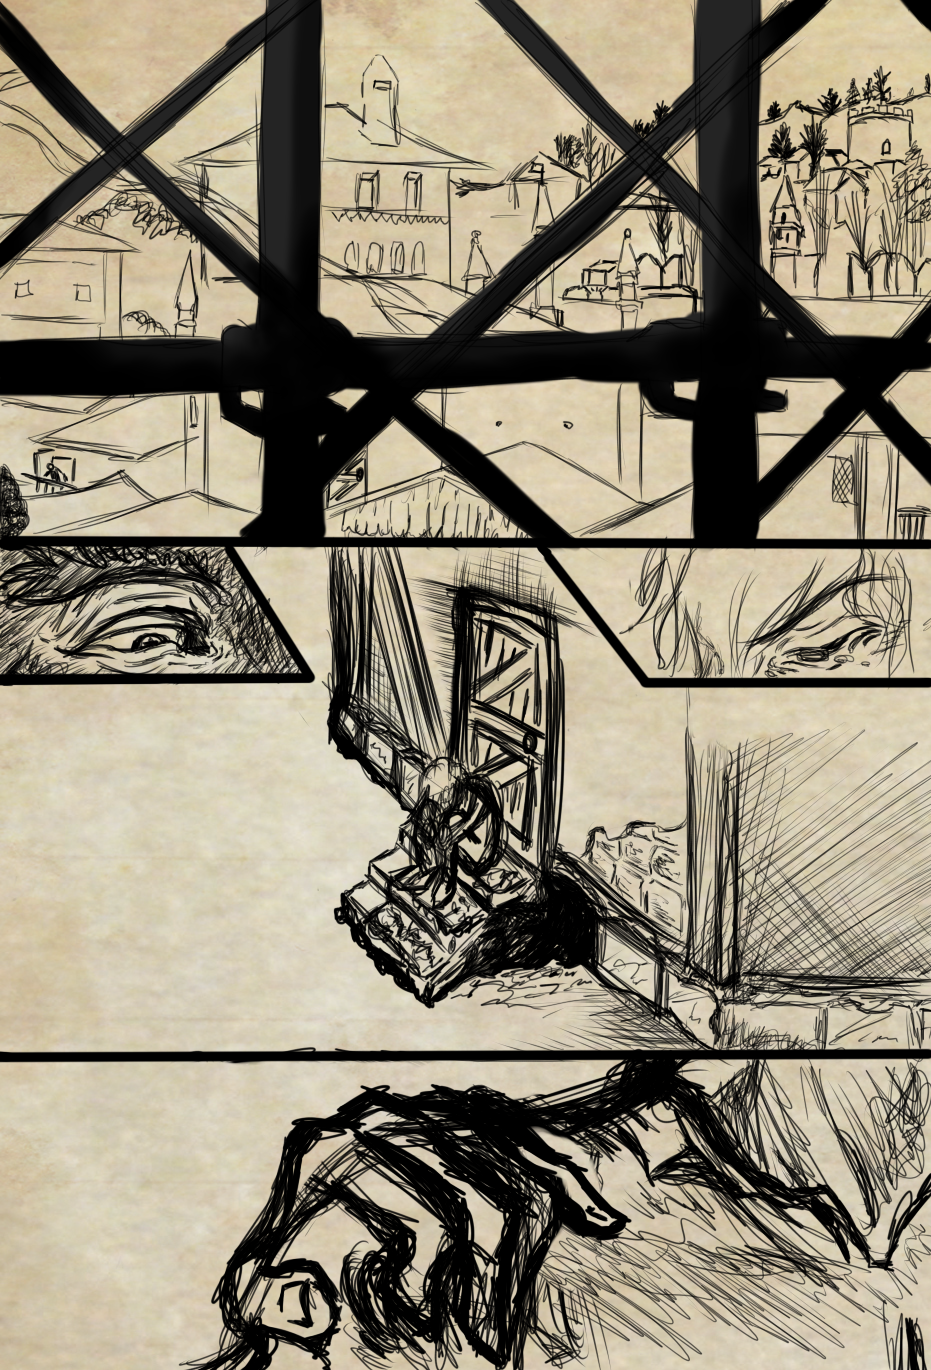 Mark Of Darkness Pag.1 Rough [Storyboard] by Dex91